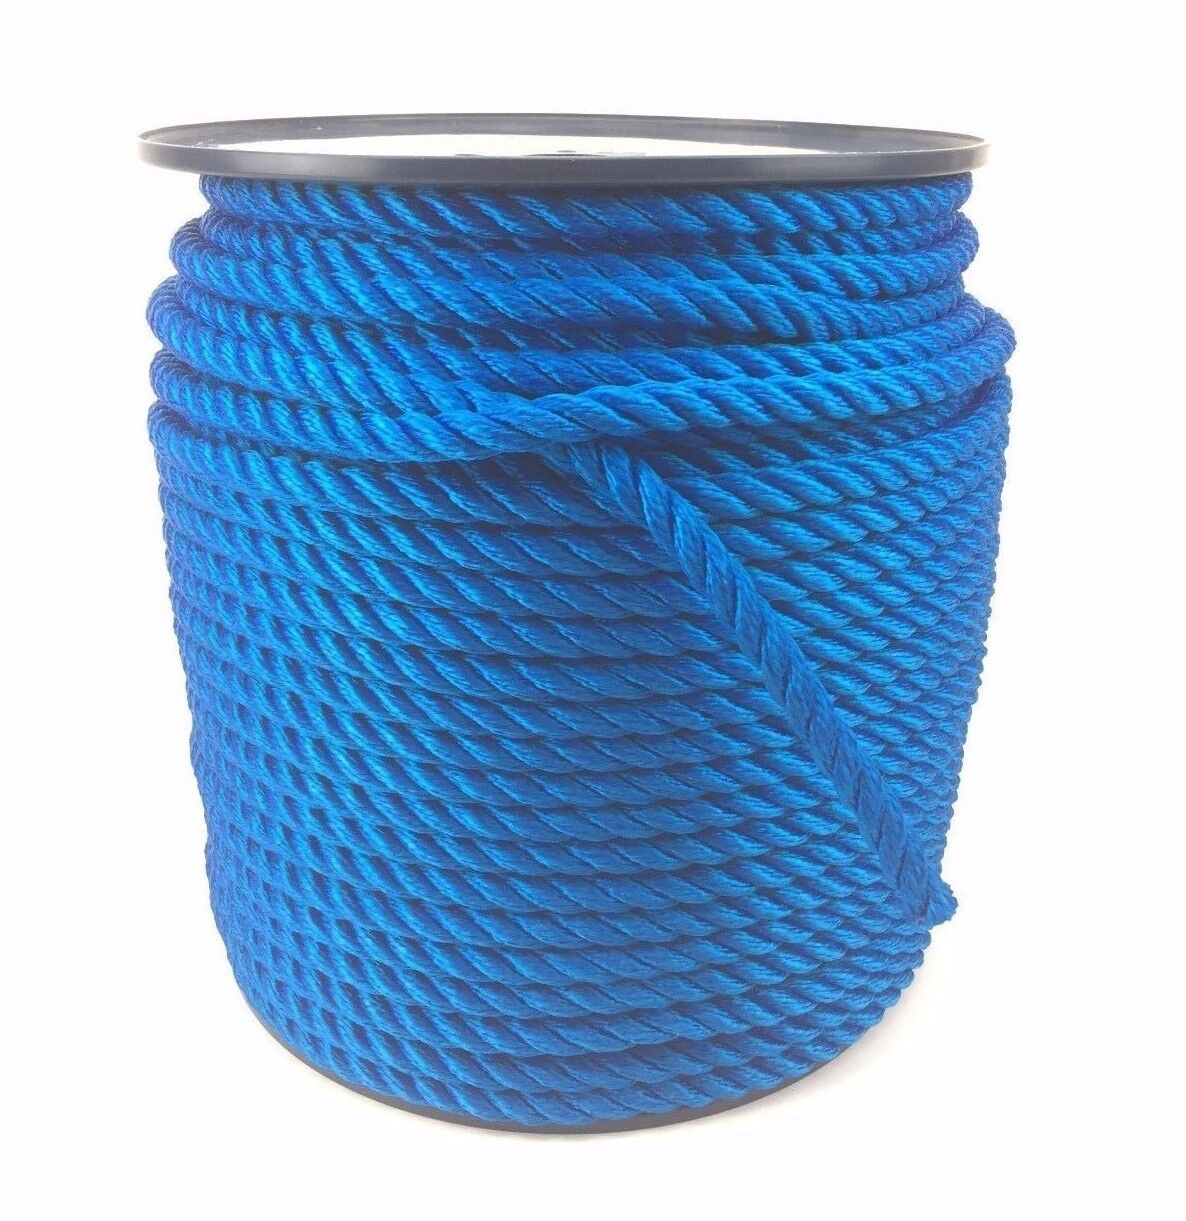 3 Strand Royal bluee Softline rope 8mm (Floating Rope) x 220m Reel, Boats Yachts